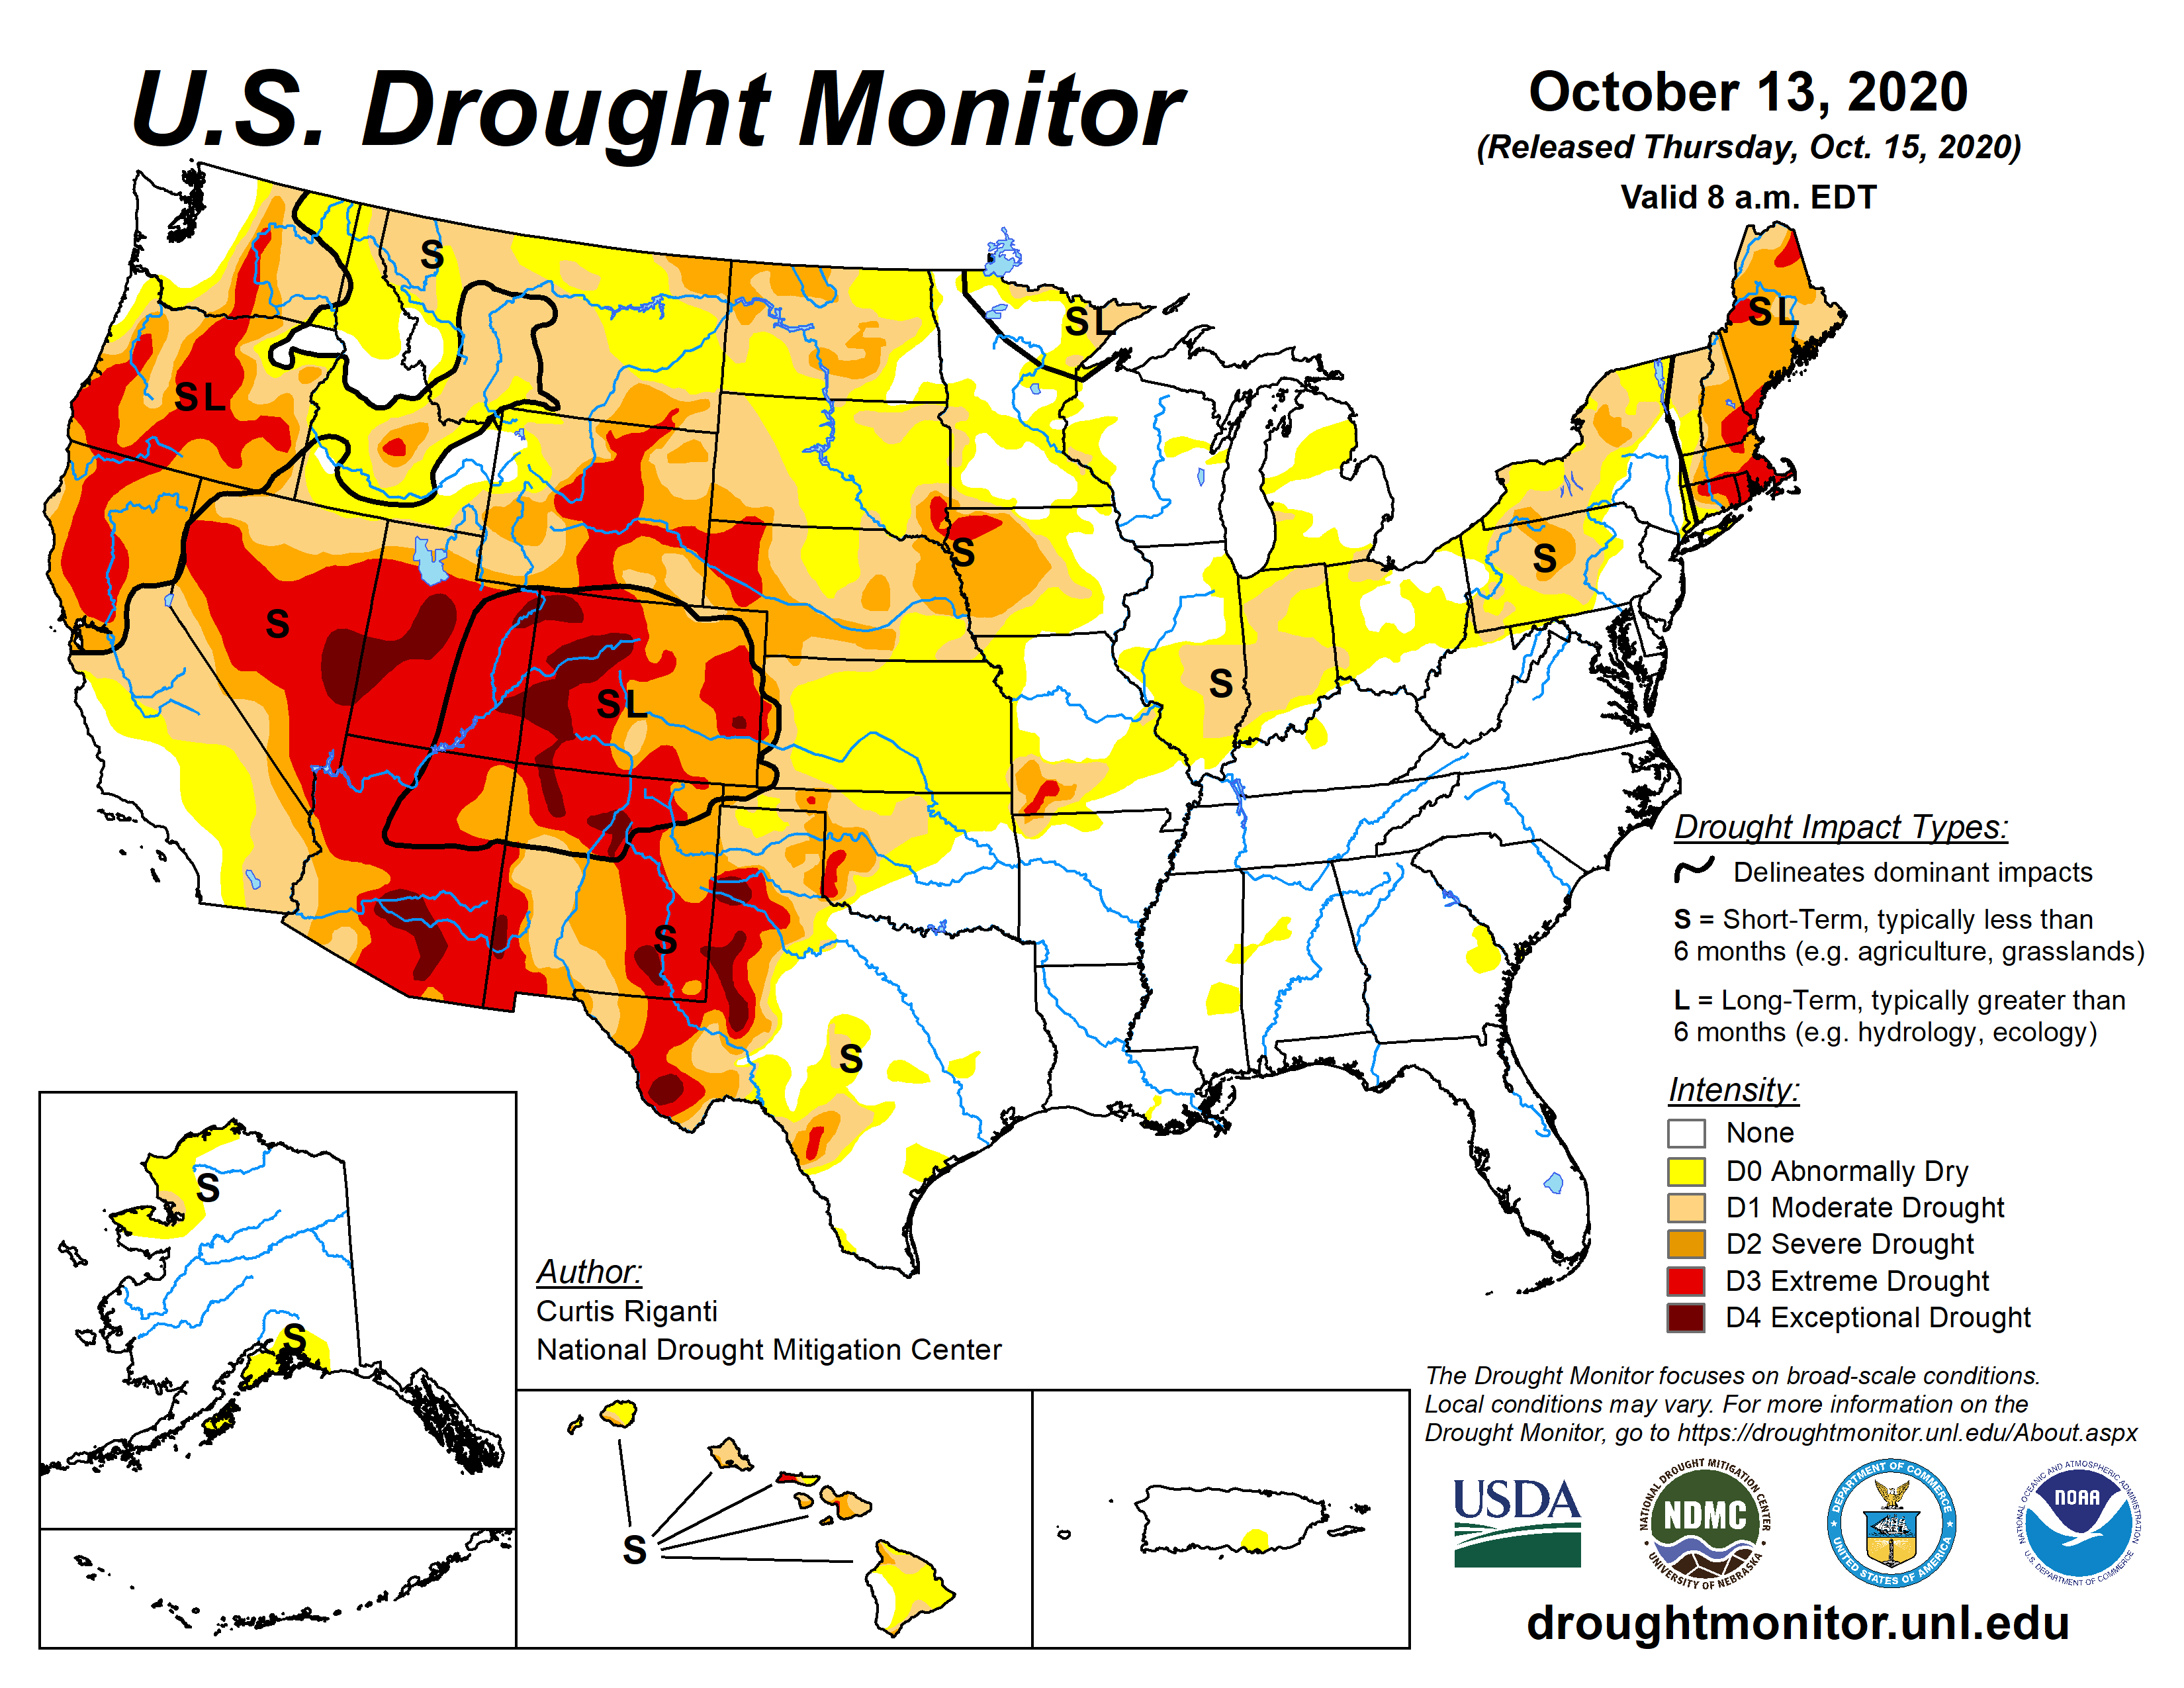 https://droughtmonitor.unl.edu/data/png/20201013/20201013_usdm.png